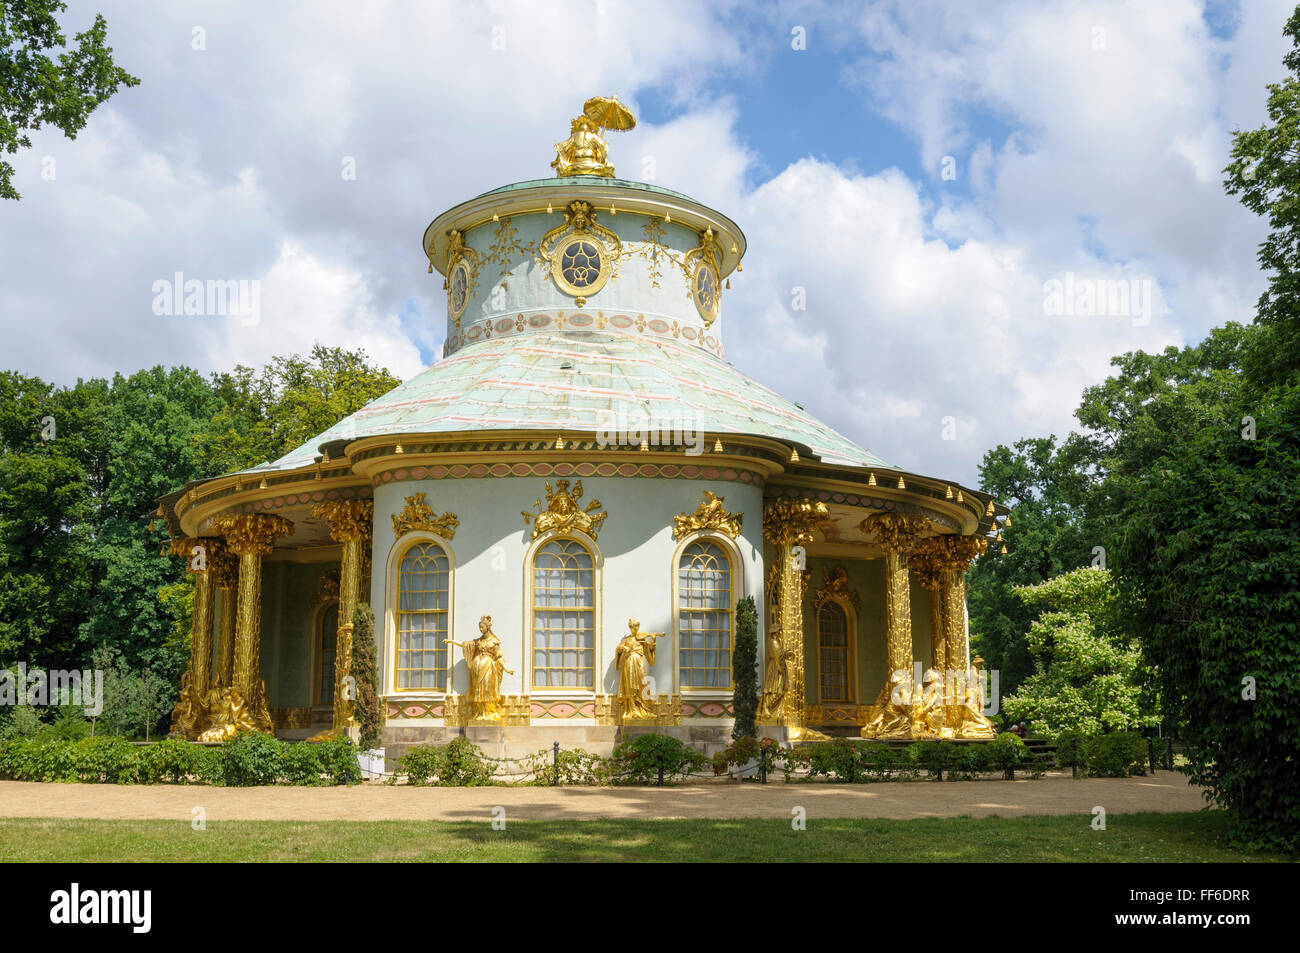 The Chinese House/Chinesisches Haus, pavilion in the Sanssouci Park, Potsdam, Brandenburg, Germany - Stock Image